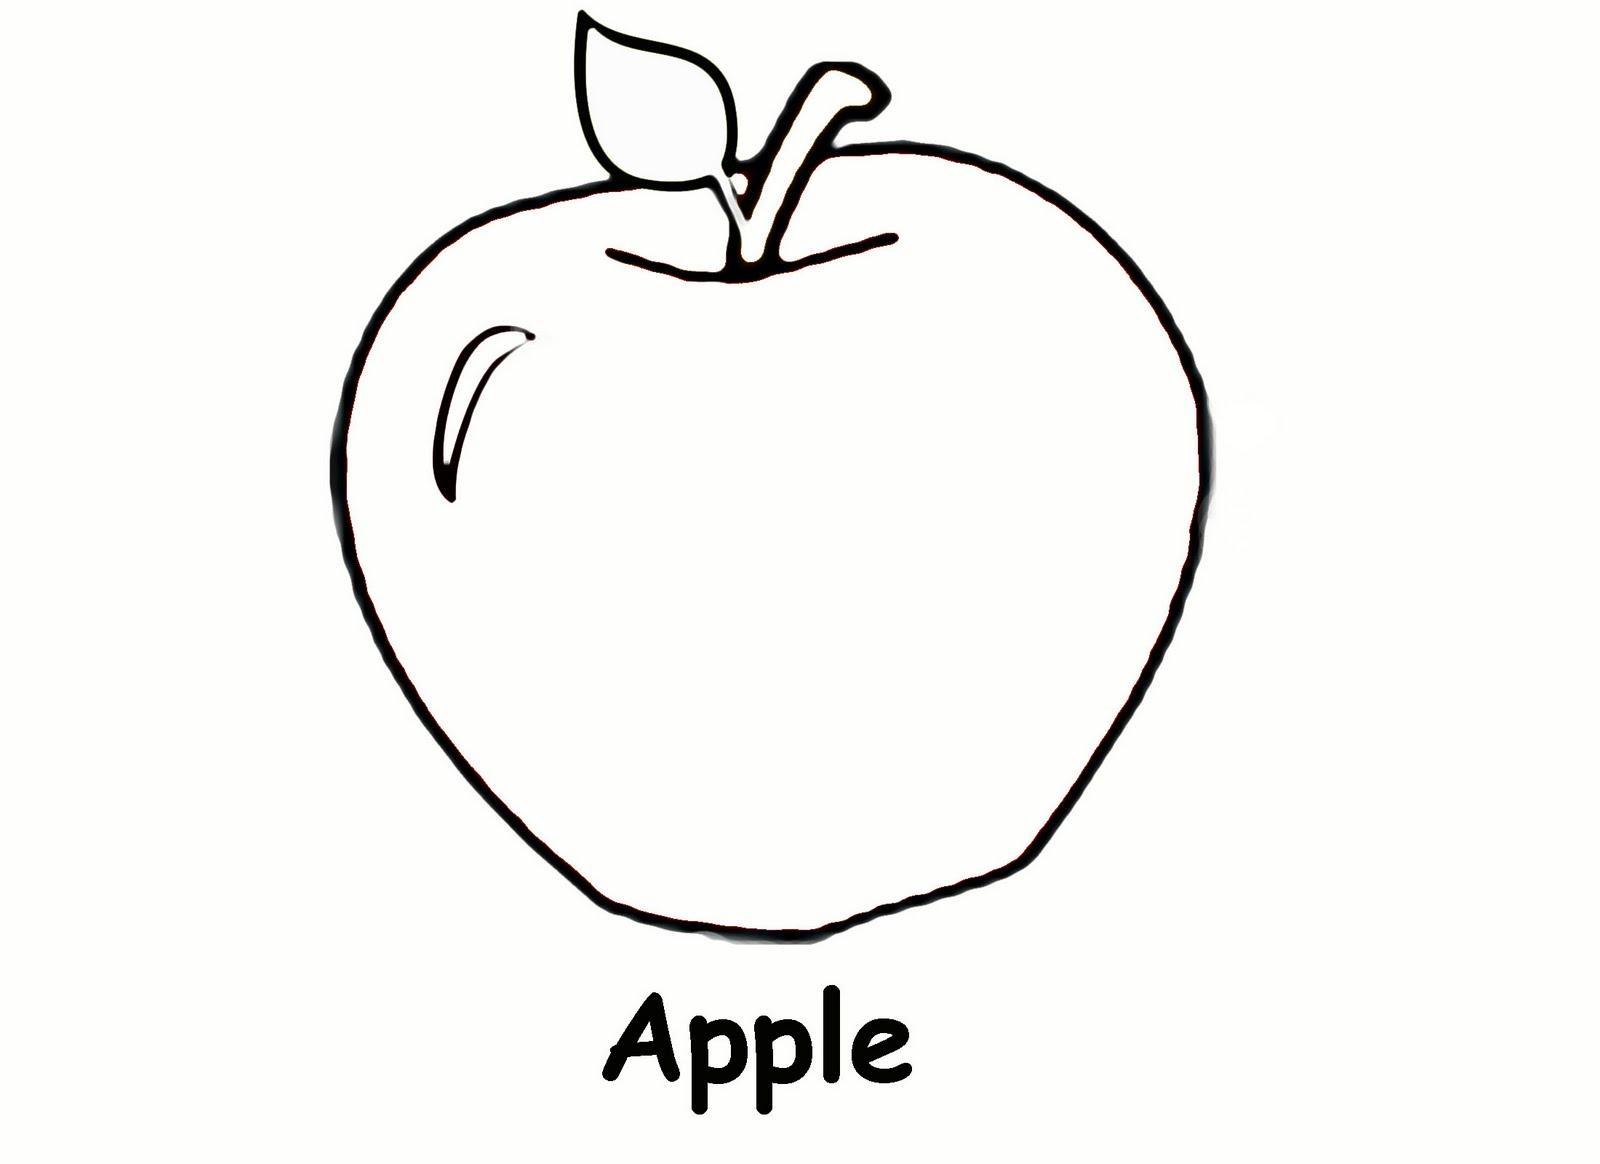 apple coloring pages kids - photo#2